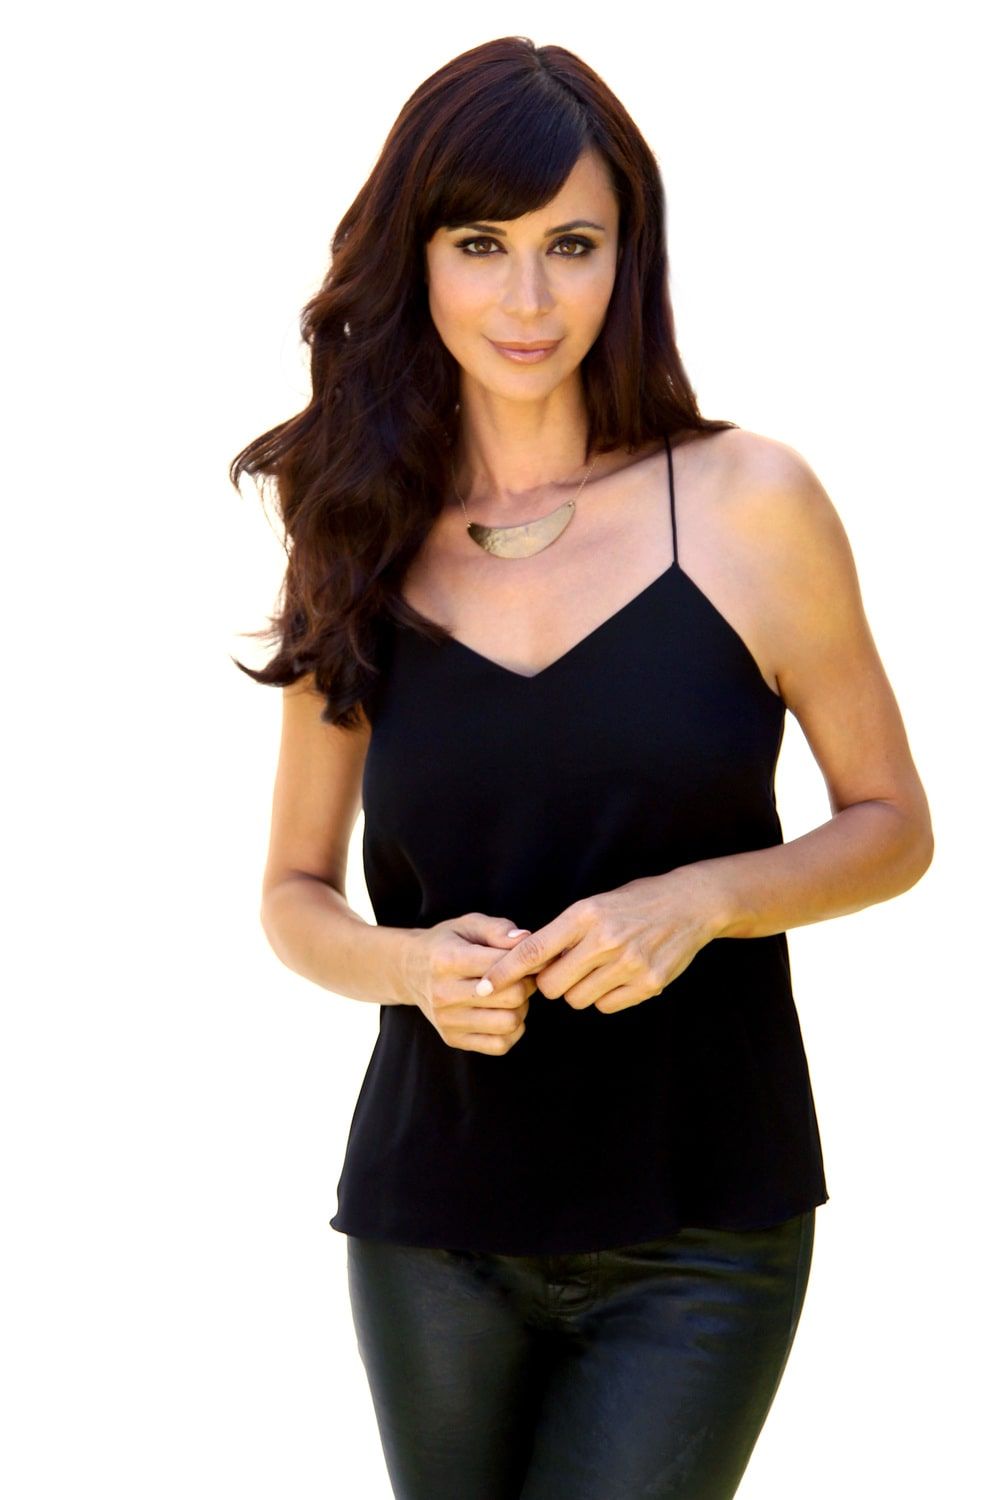 49 Hottest Catherine Bell Tits Photos Proves She Has The